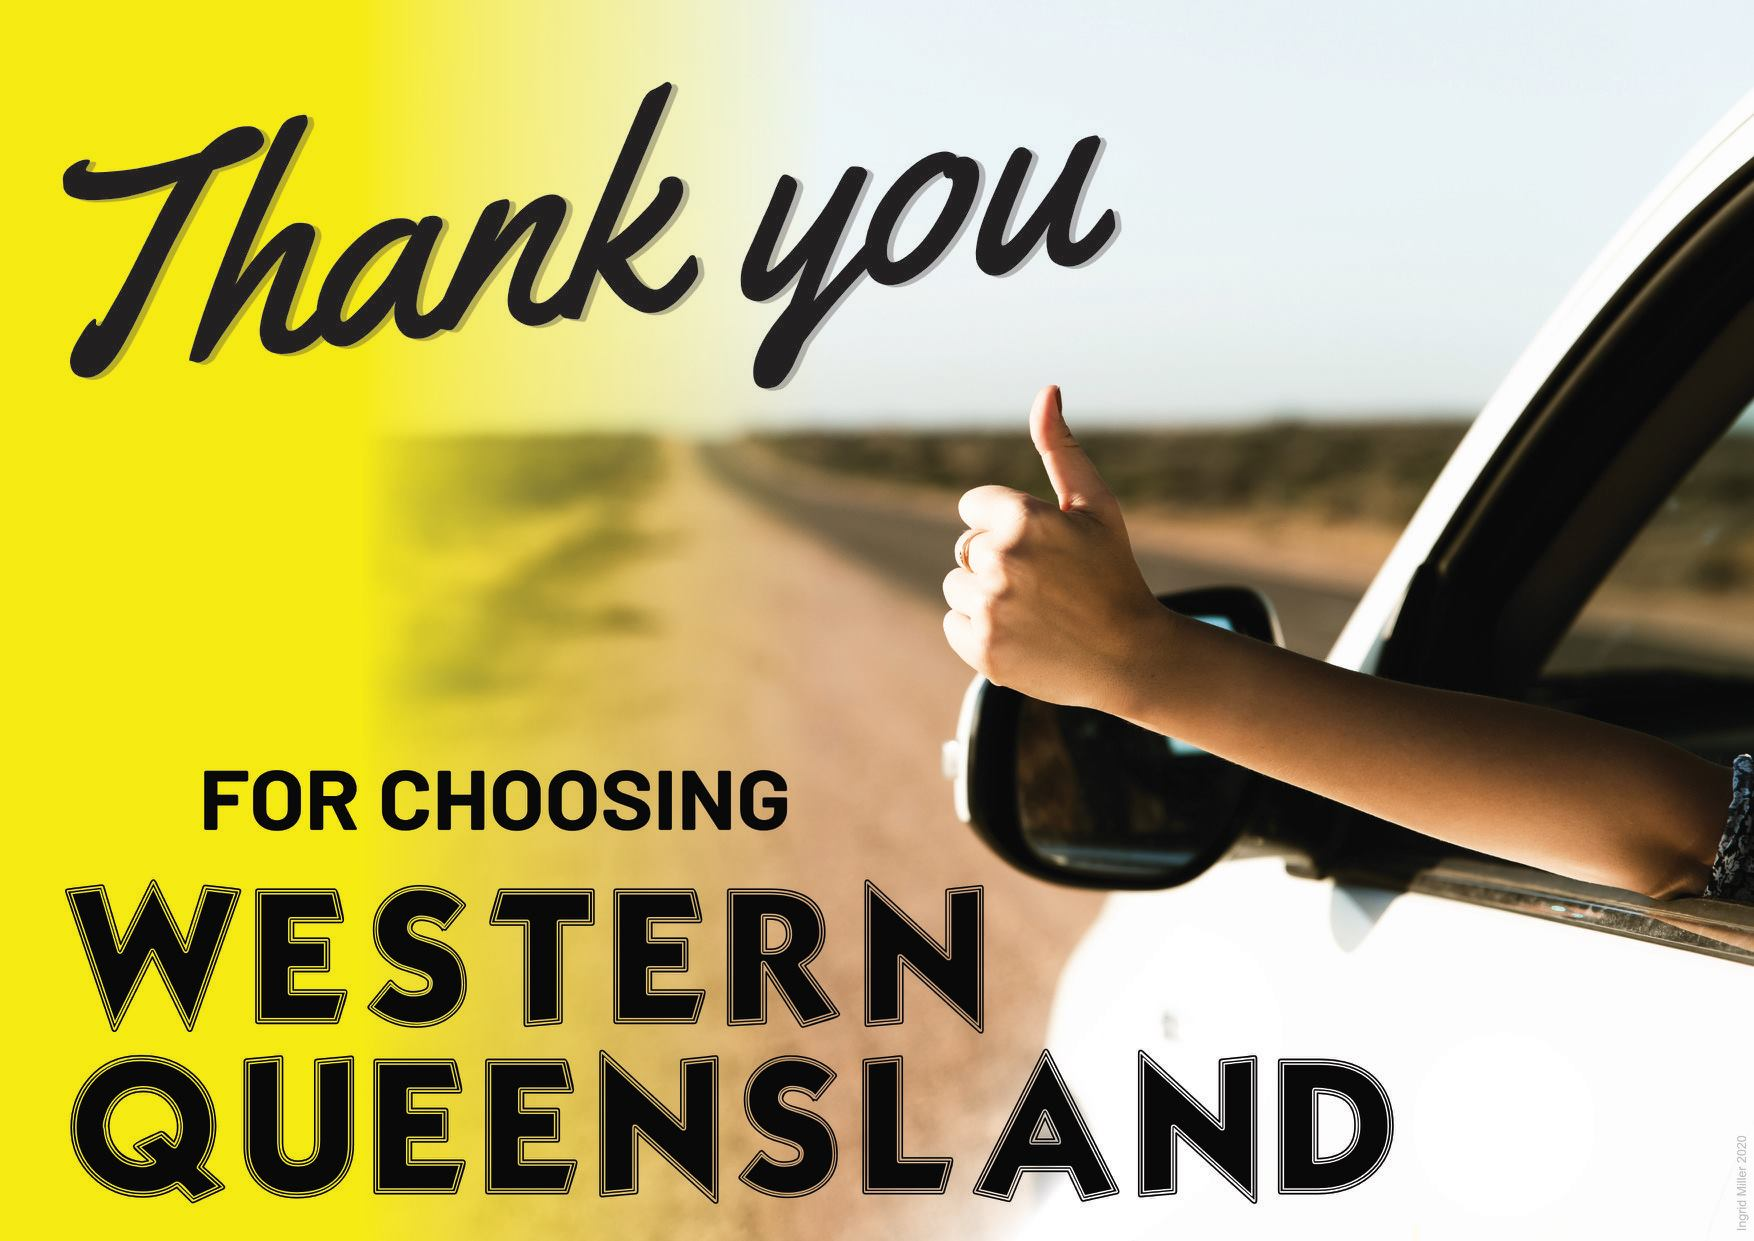 Thank you from Western Queensland